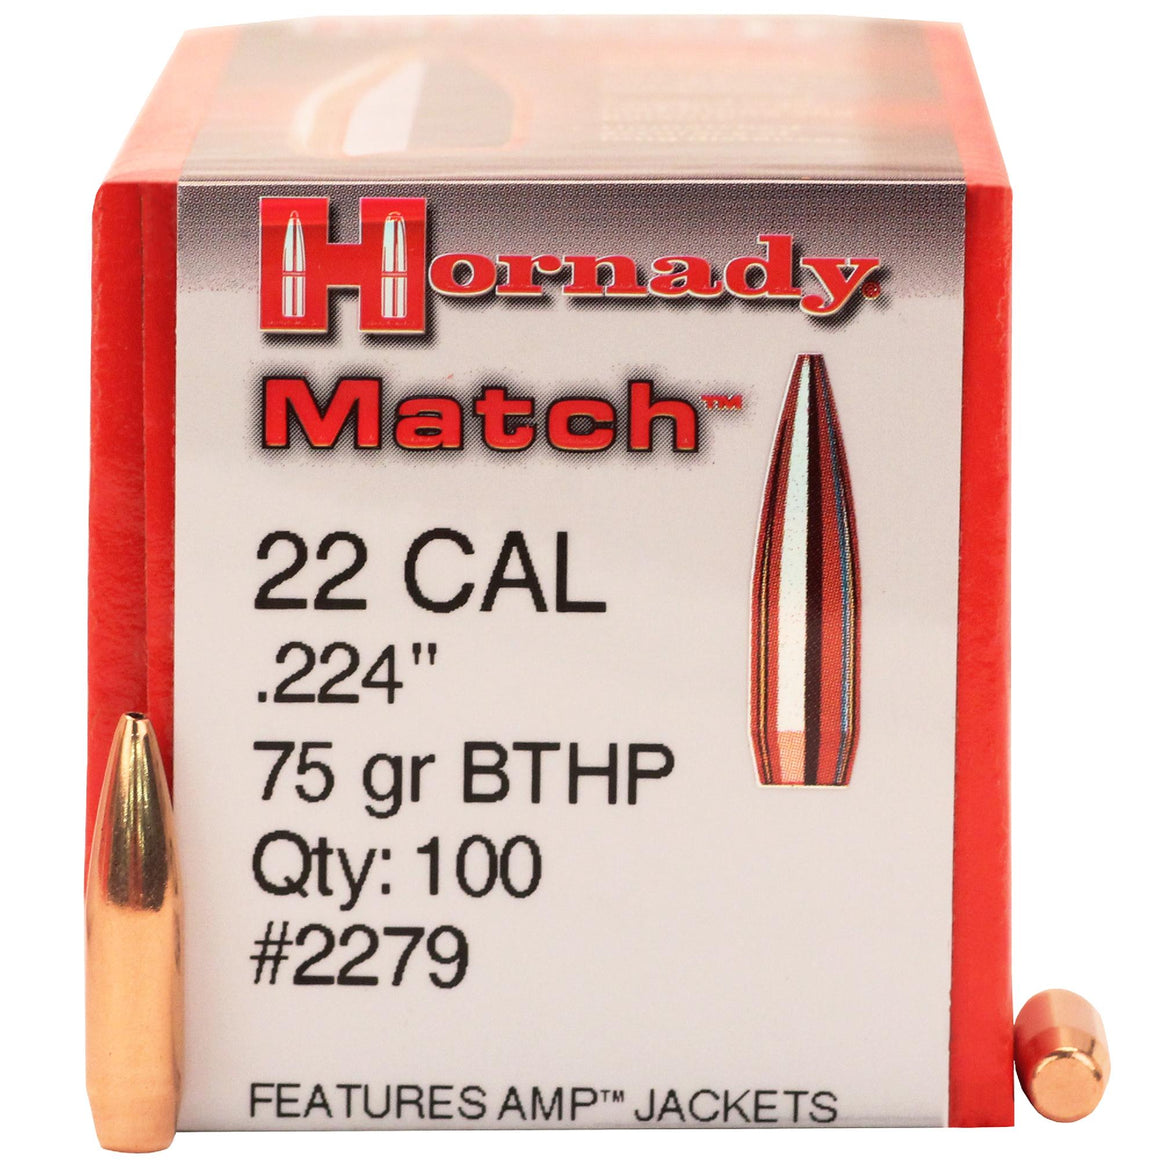 ".22 Caliber (0.224"" Diameter) Bullets - atch, 75 Grains, Hollow Point Boat Tail (HPBT), Per 100"